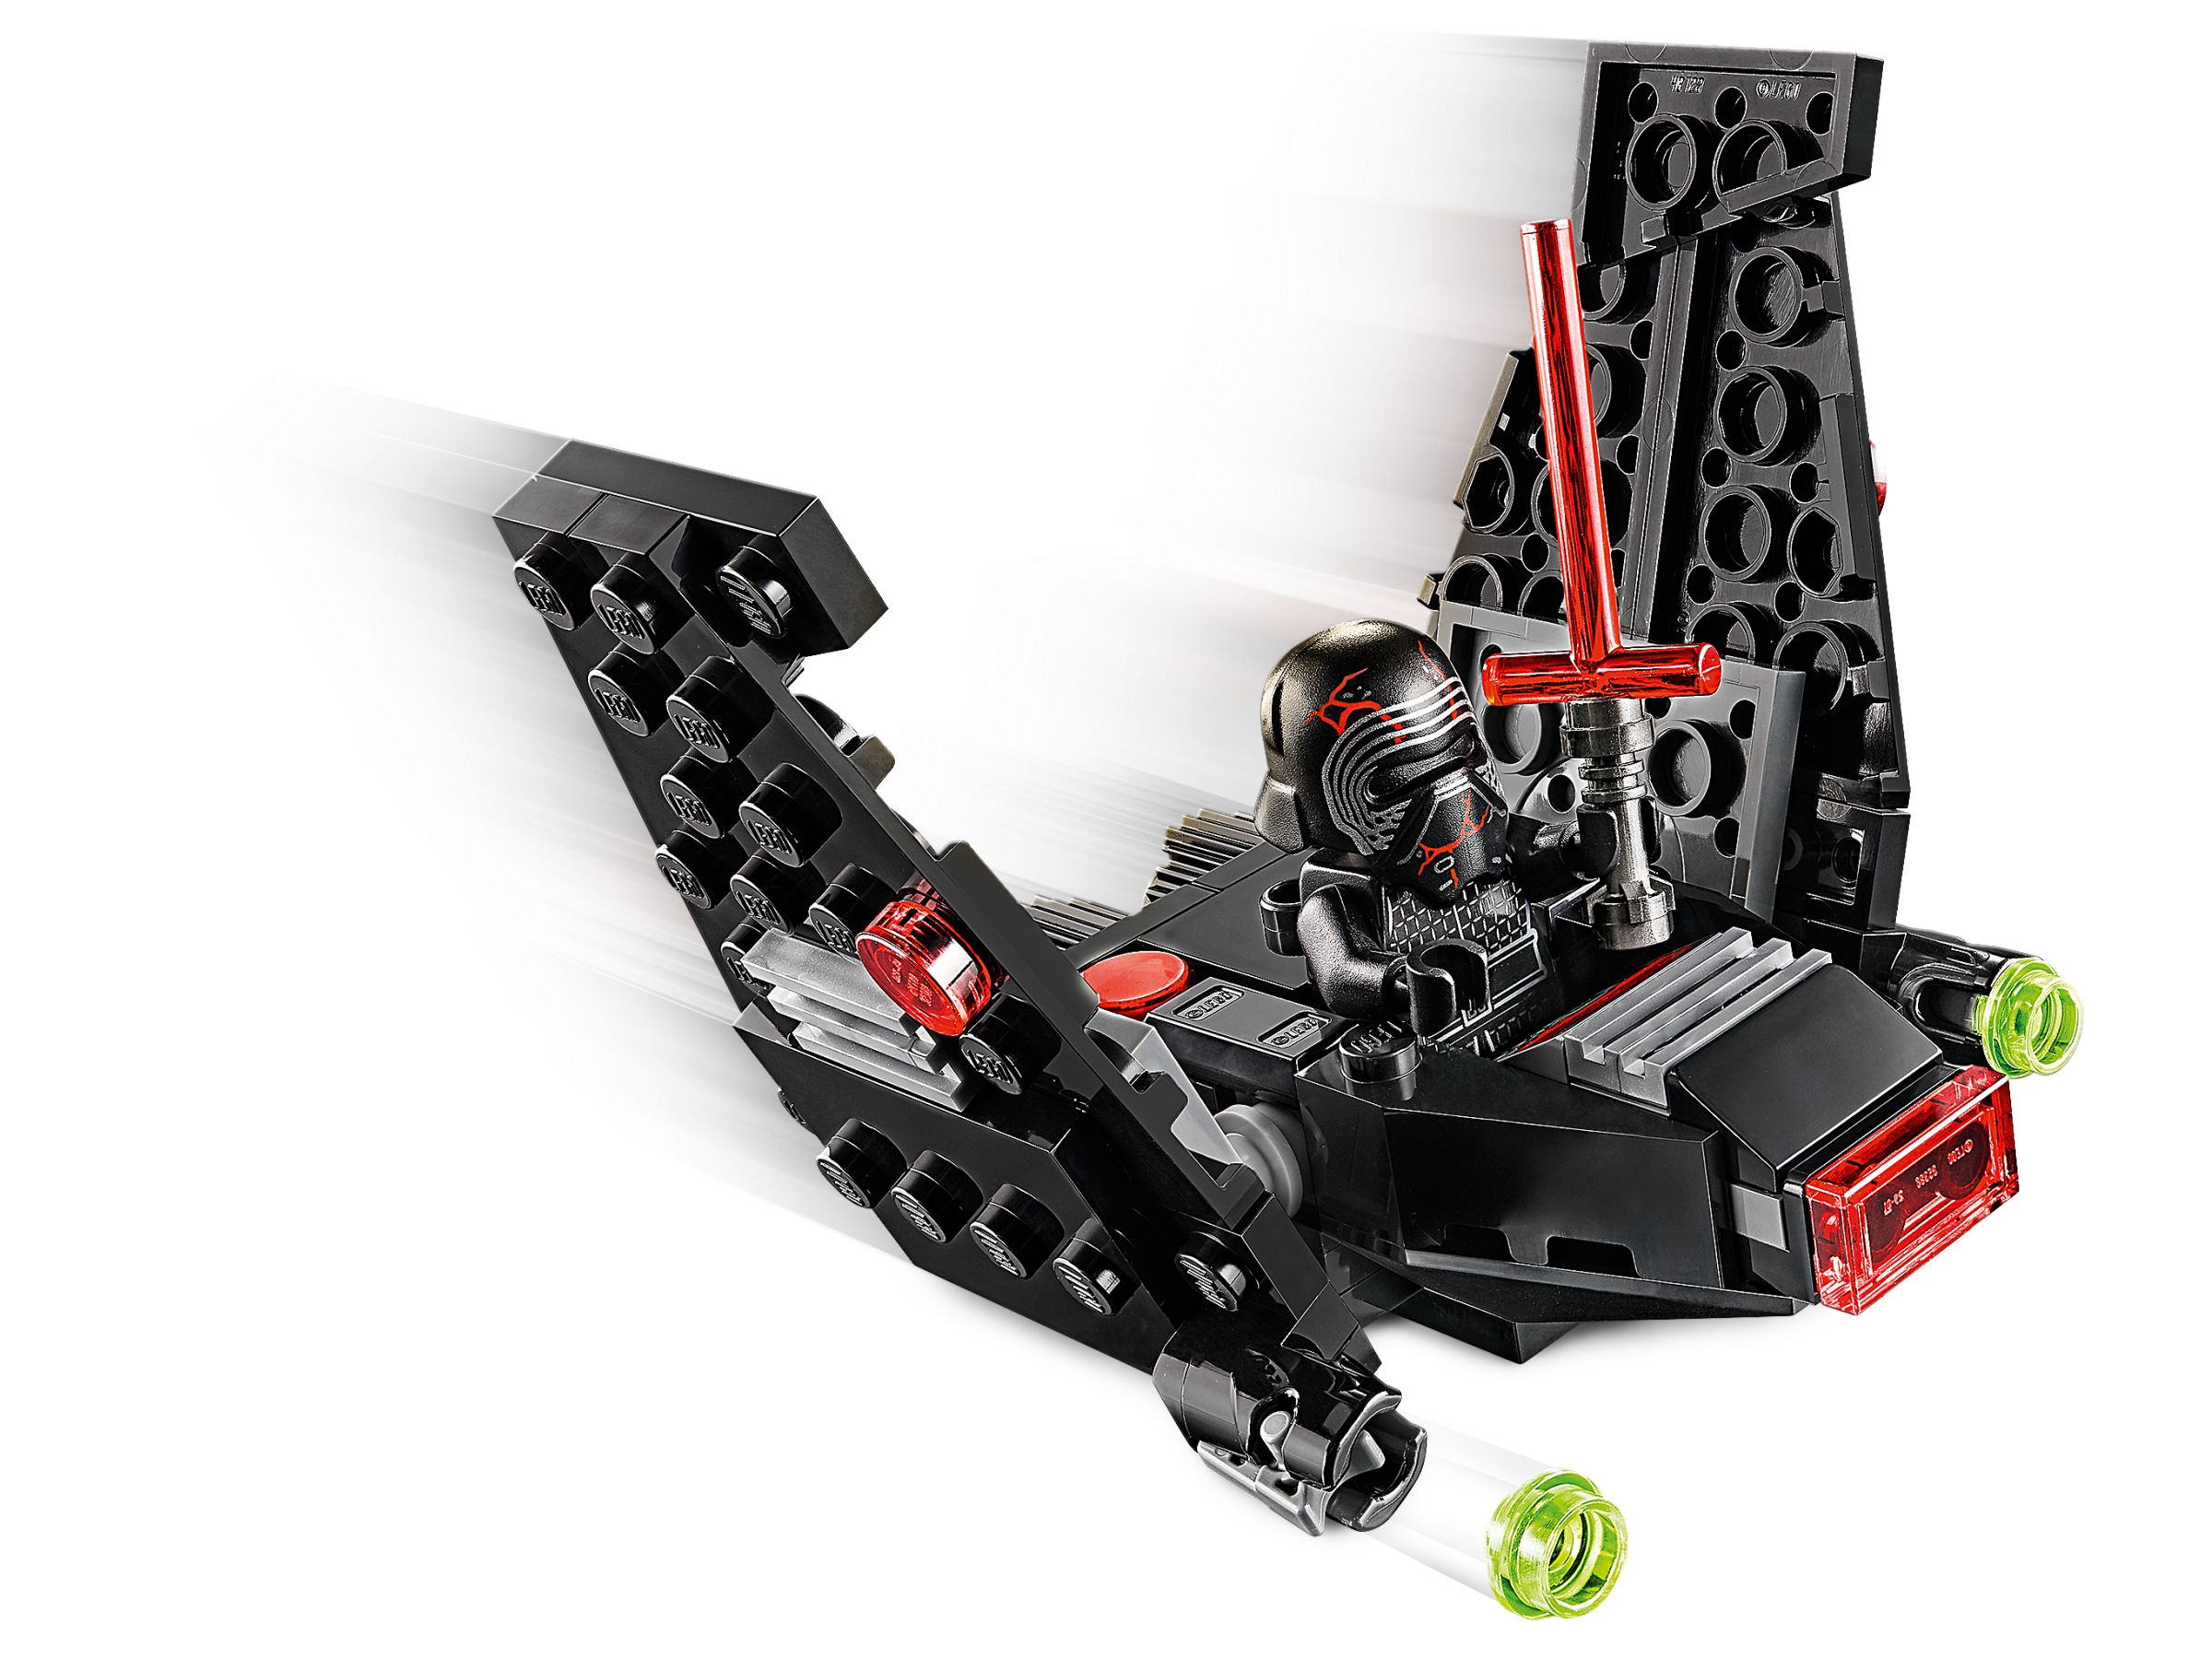 LEGO Star Wars 75264 Kylo Rens Shuttle™ Microfighter LEGO_75264_alt2.jpg